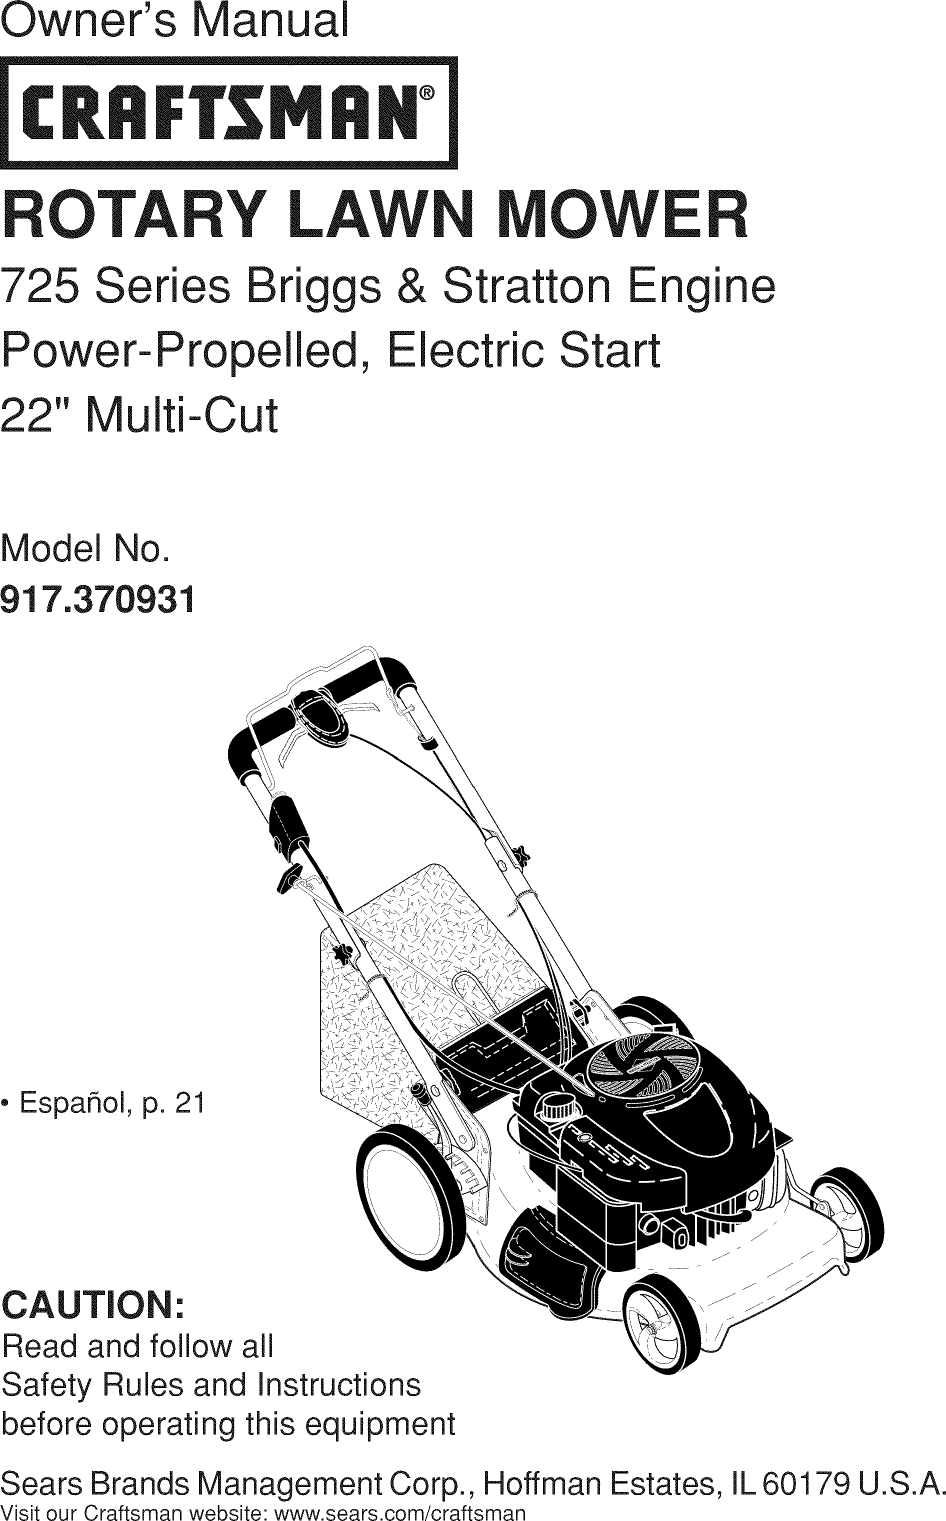 Craftsman 917370931 User Manual MOWER Manuals And Guides